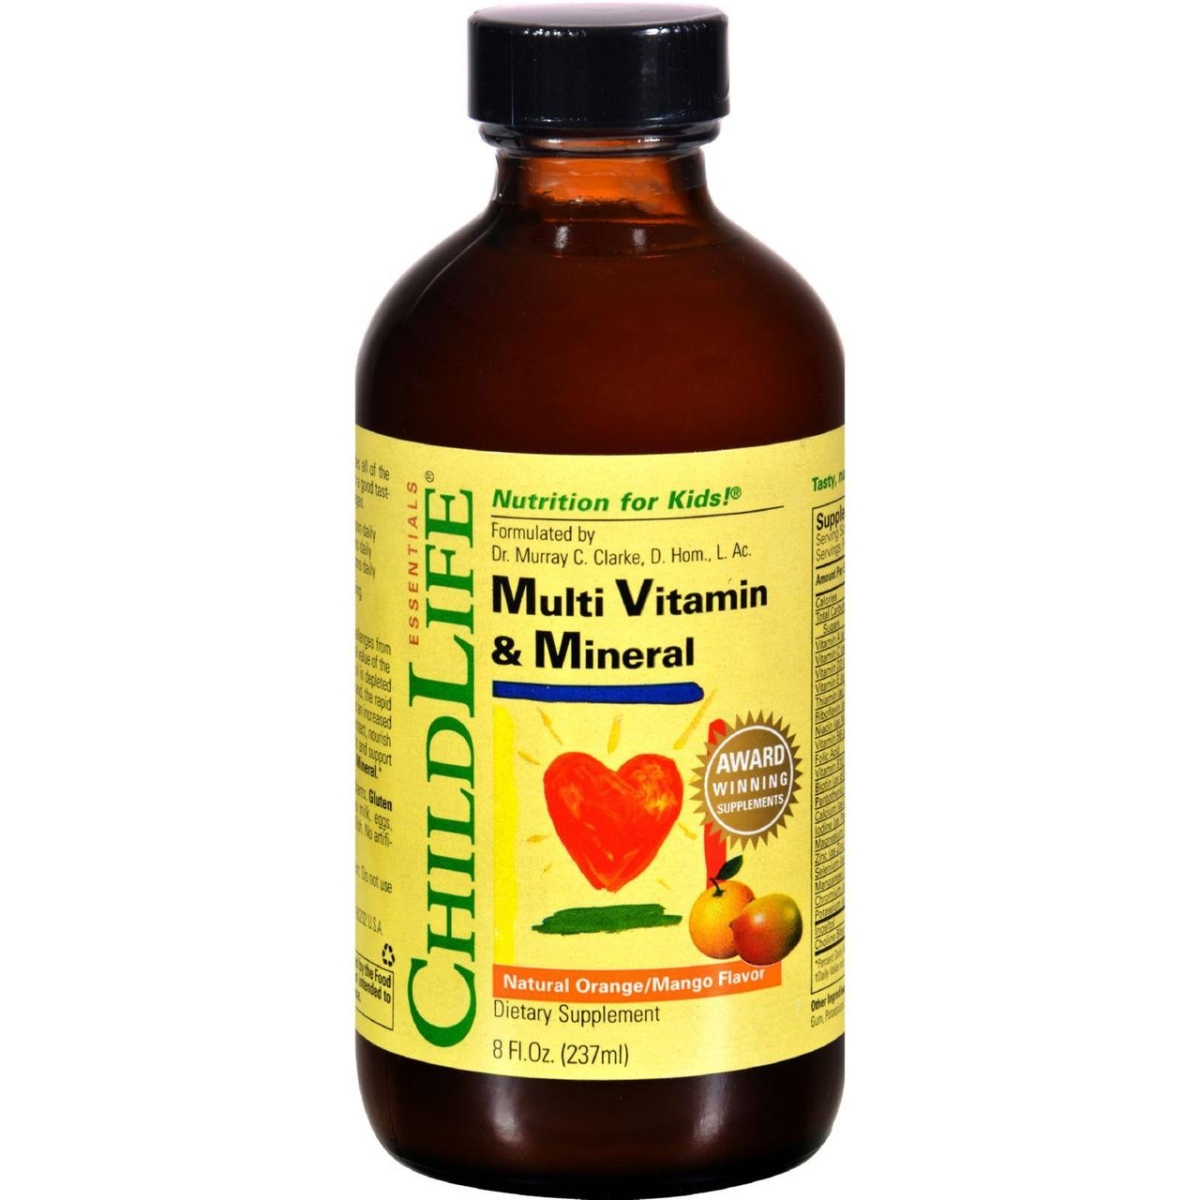 Child Life HG0408773 8 fl oz Multi Vitamin & Mineral - Natural Orange Mango - Pack of 3